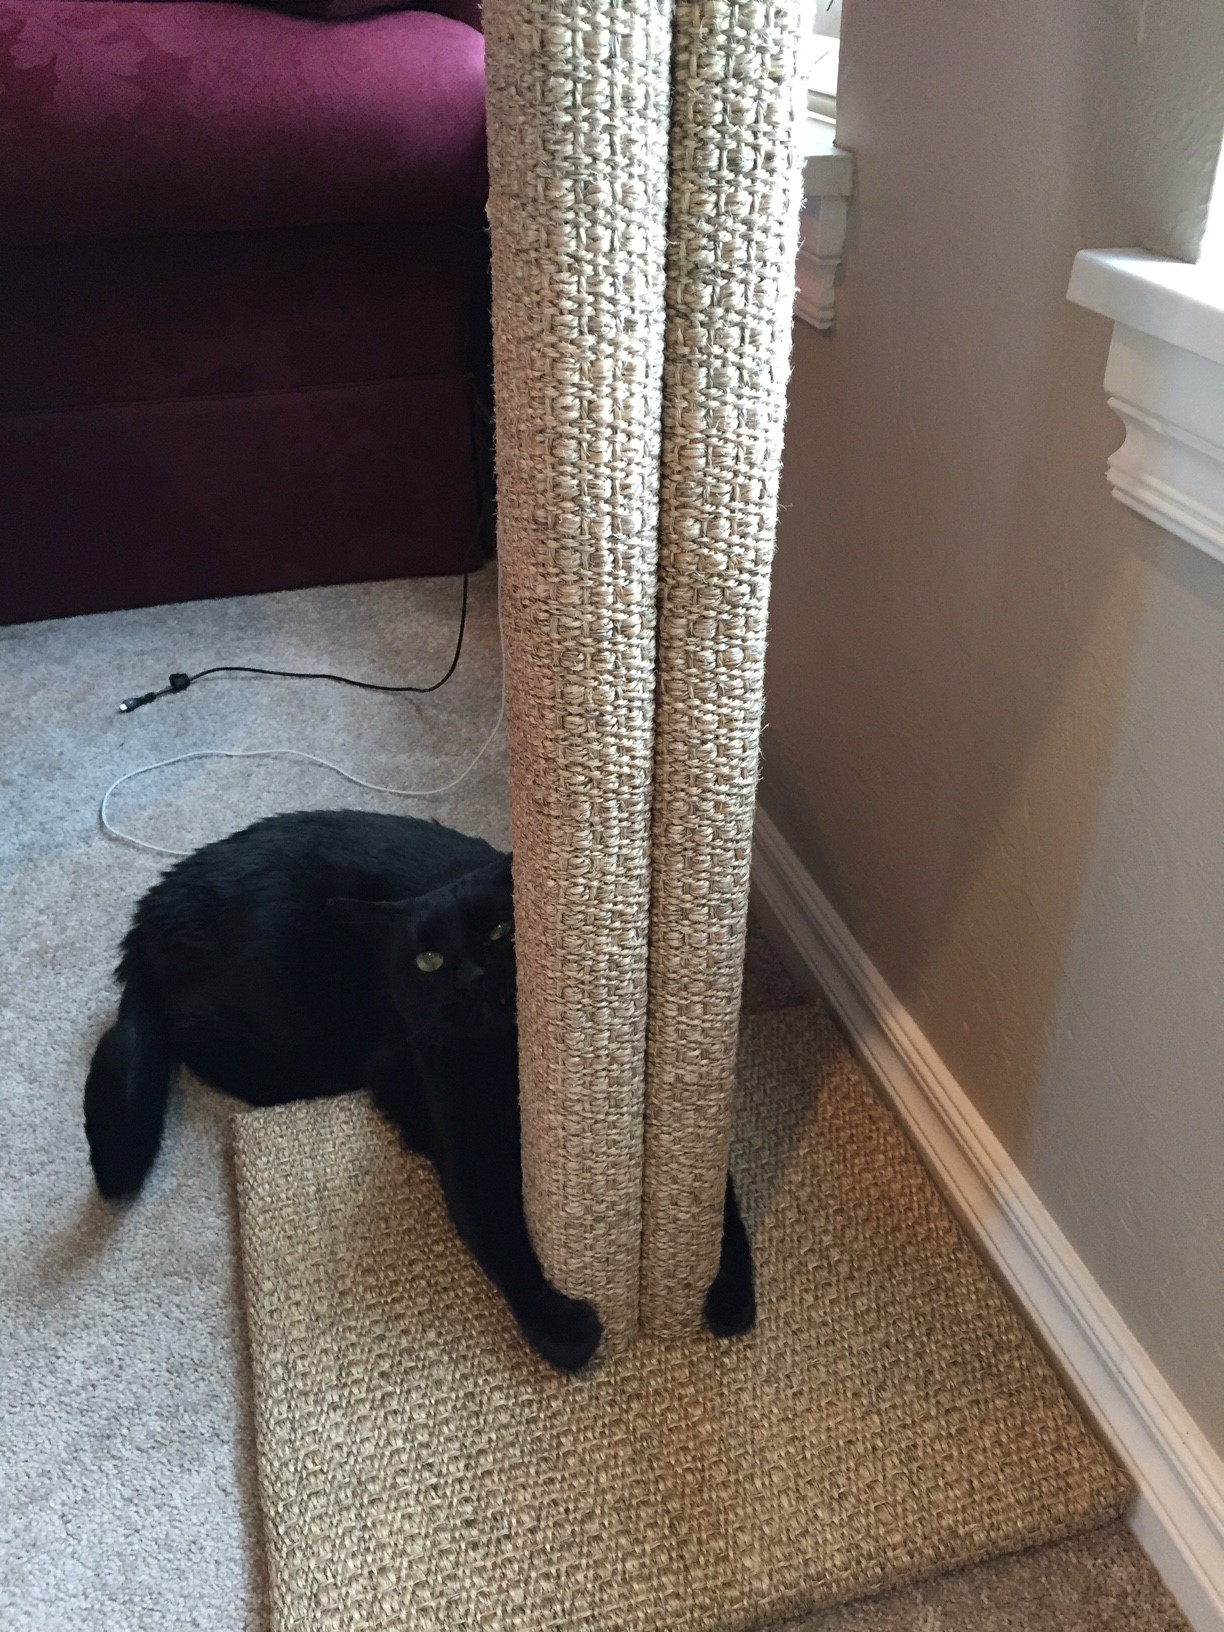 Rudy hugging his new scratching post by Fundamentally Feline.